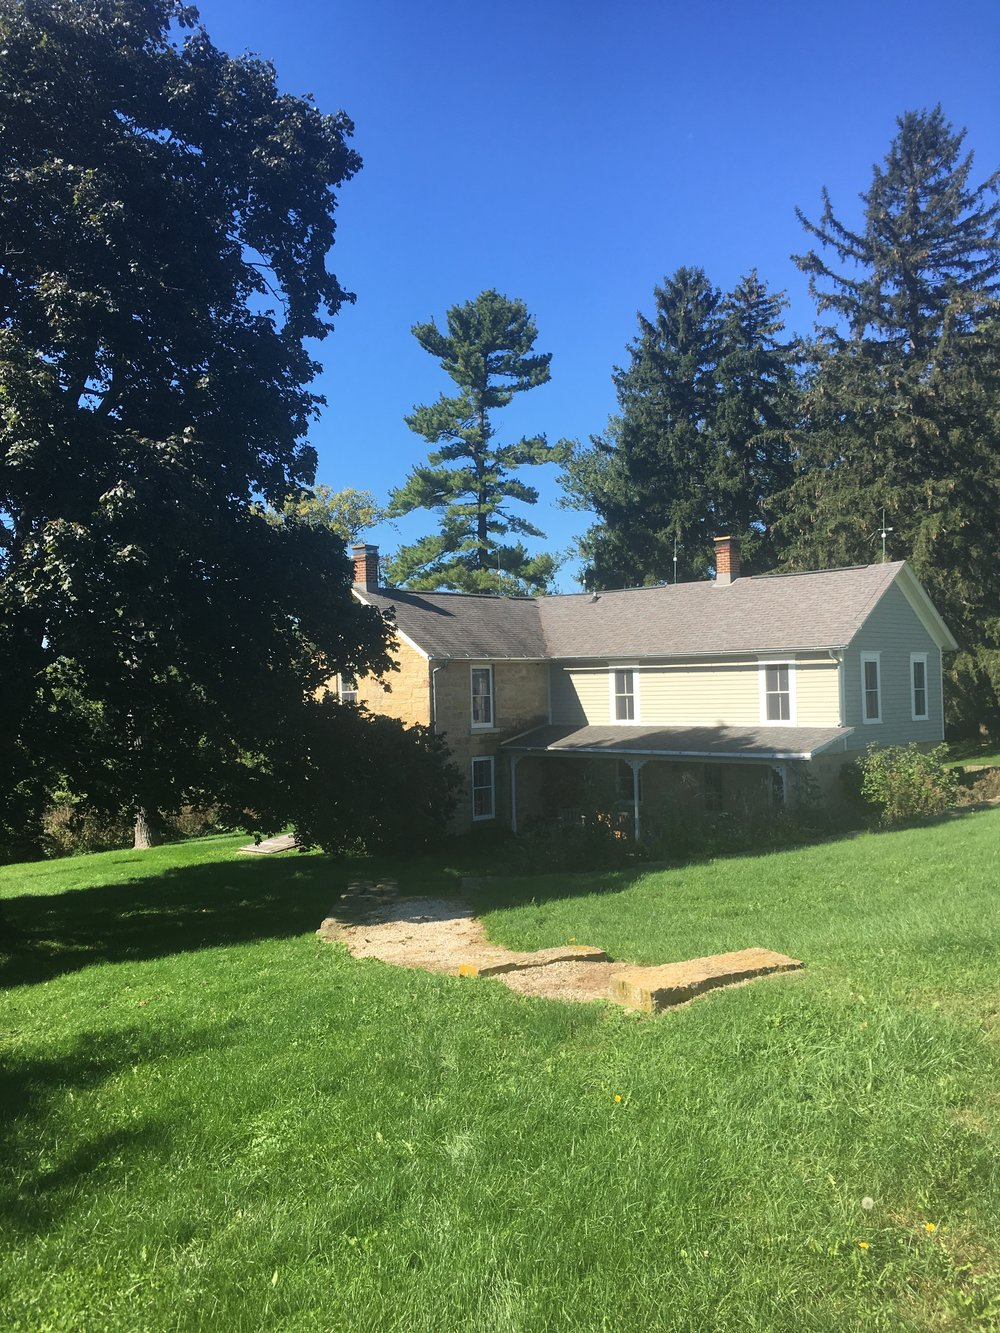 Historic Farmhouse Landscape - Before